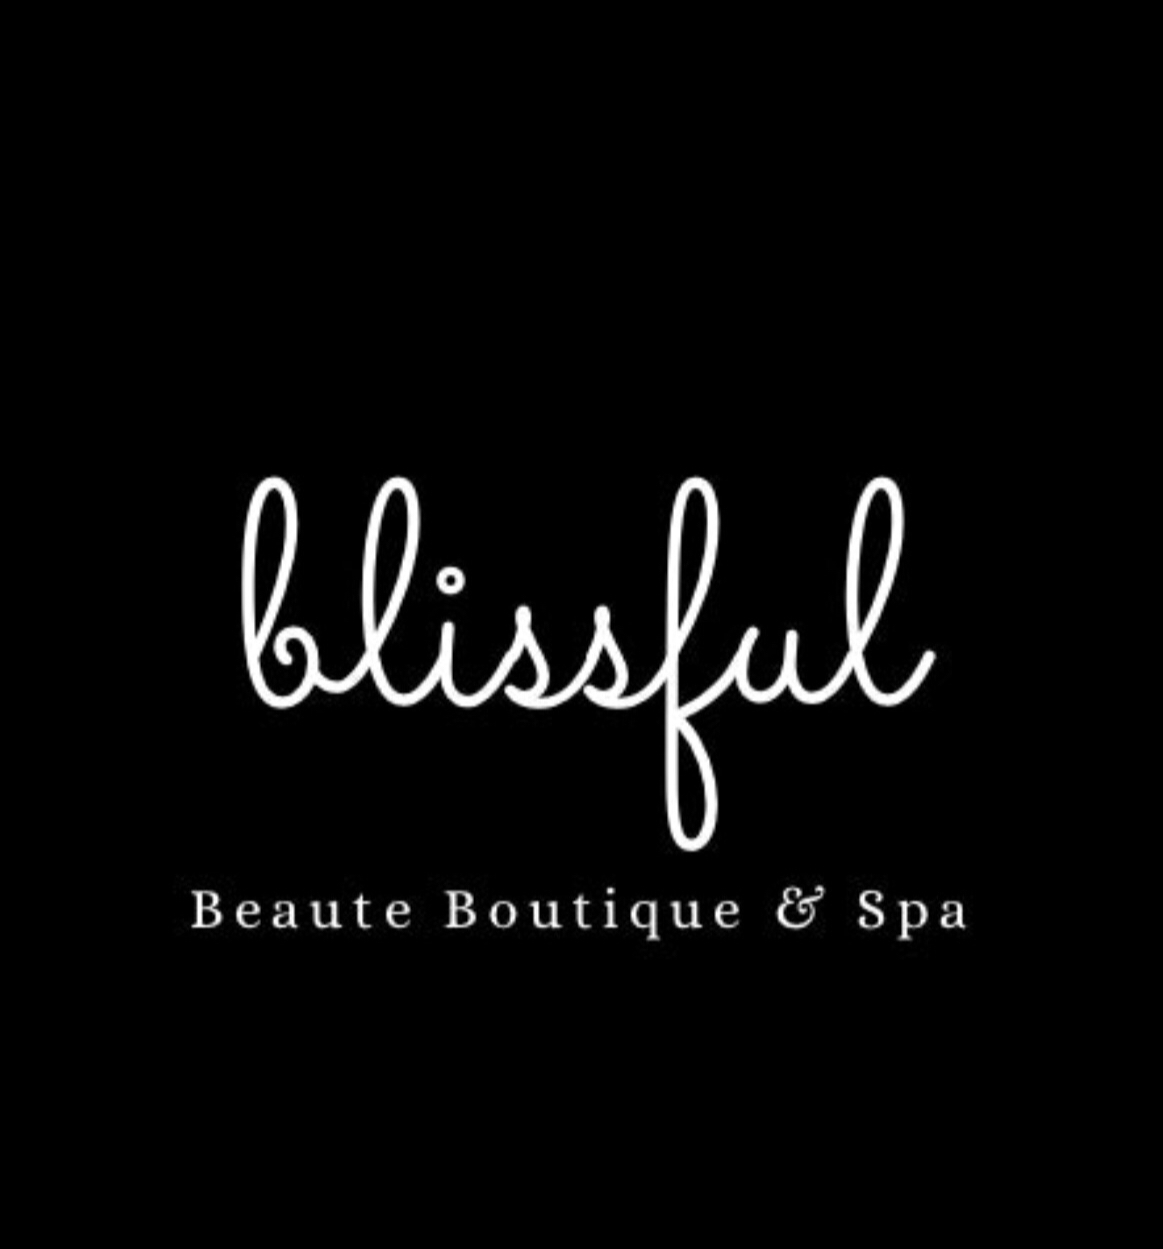 Blissful Beauté Boutique & Spa